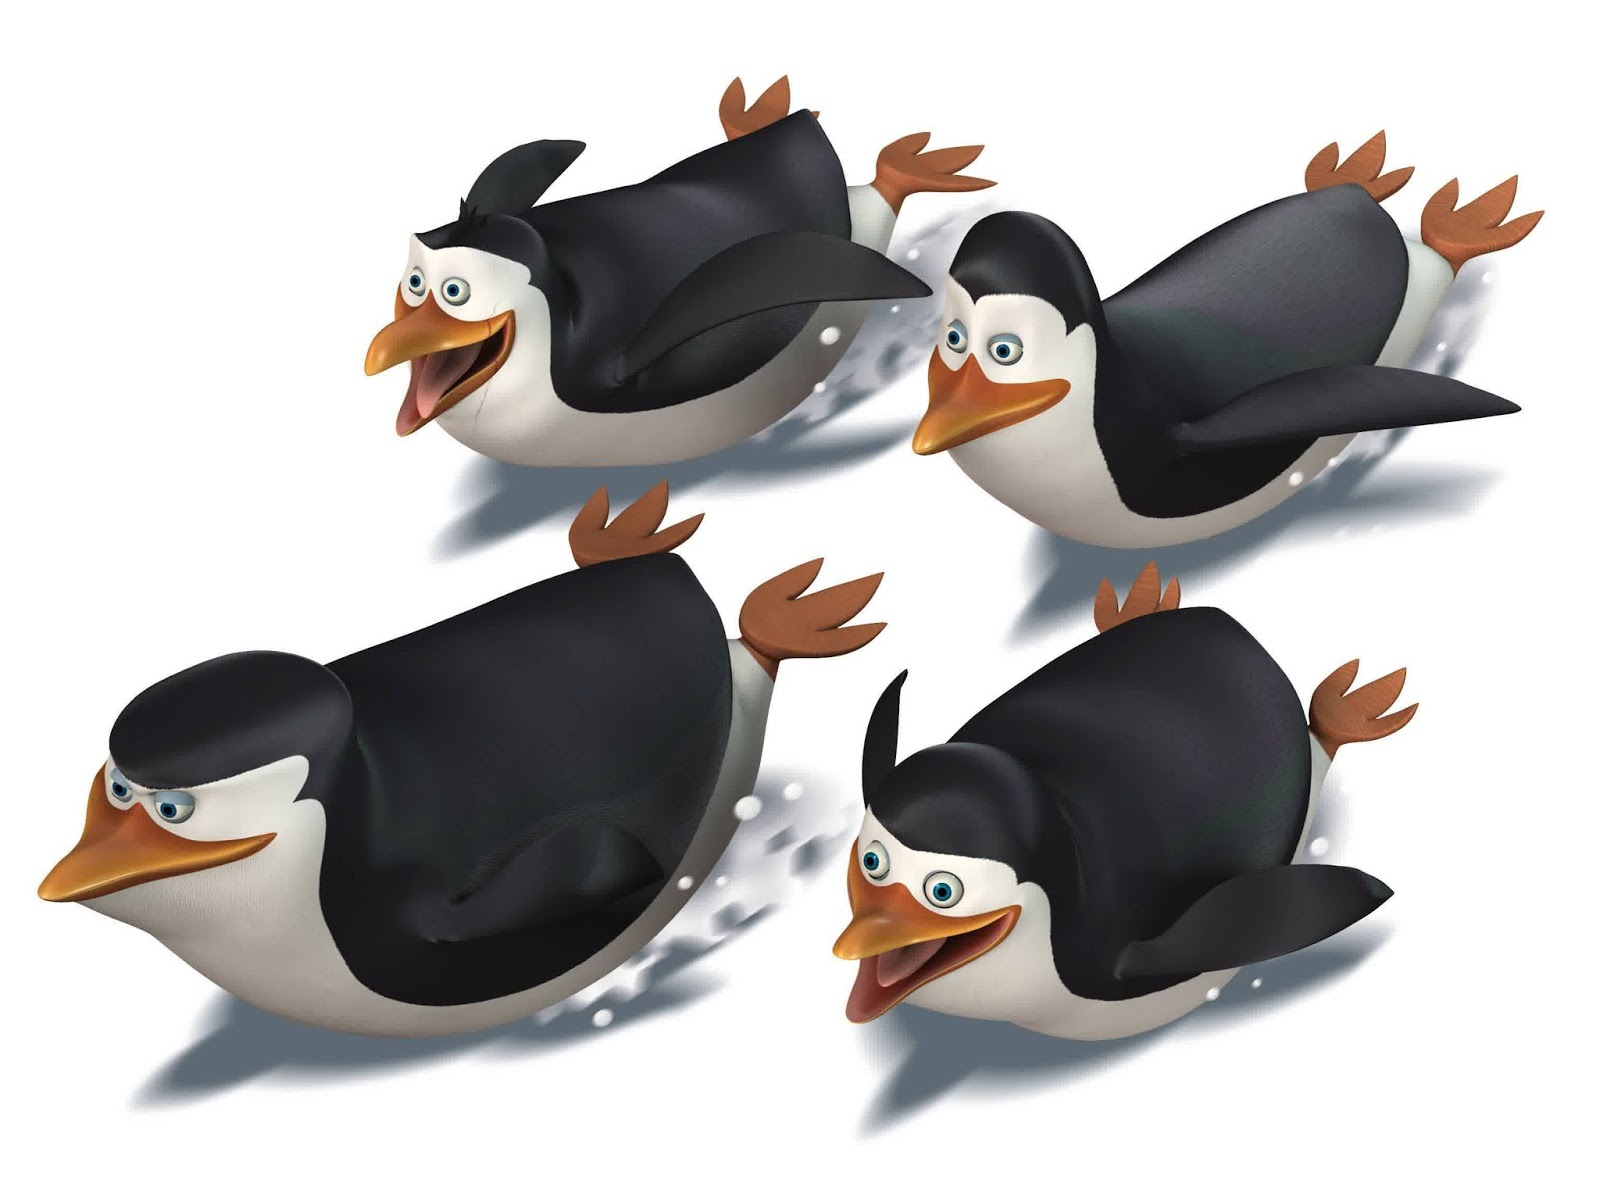 pinguins of madagascar movie wallpaper 3d animation